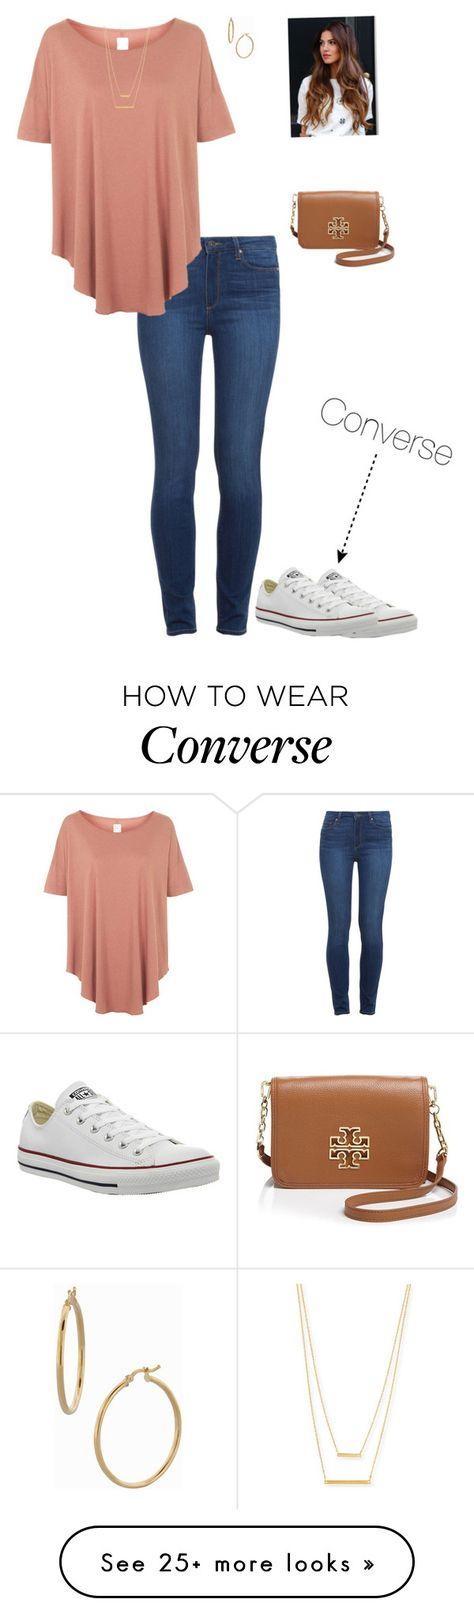 """C Is For Converse"" by preppyygirll on Polyvore featuring Converse, Paige Denim, Topshop, Jennifer Zeuner, Tory Burch and Bony Levy                                                                                                                                                      More"